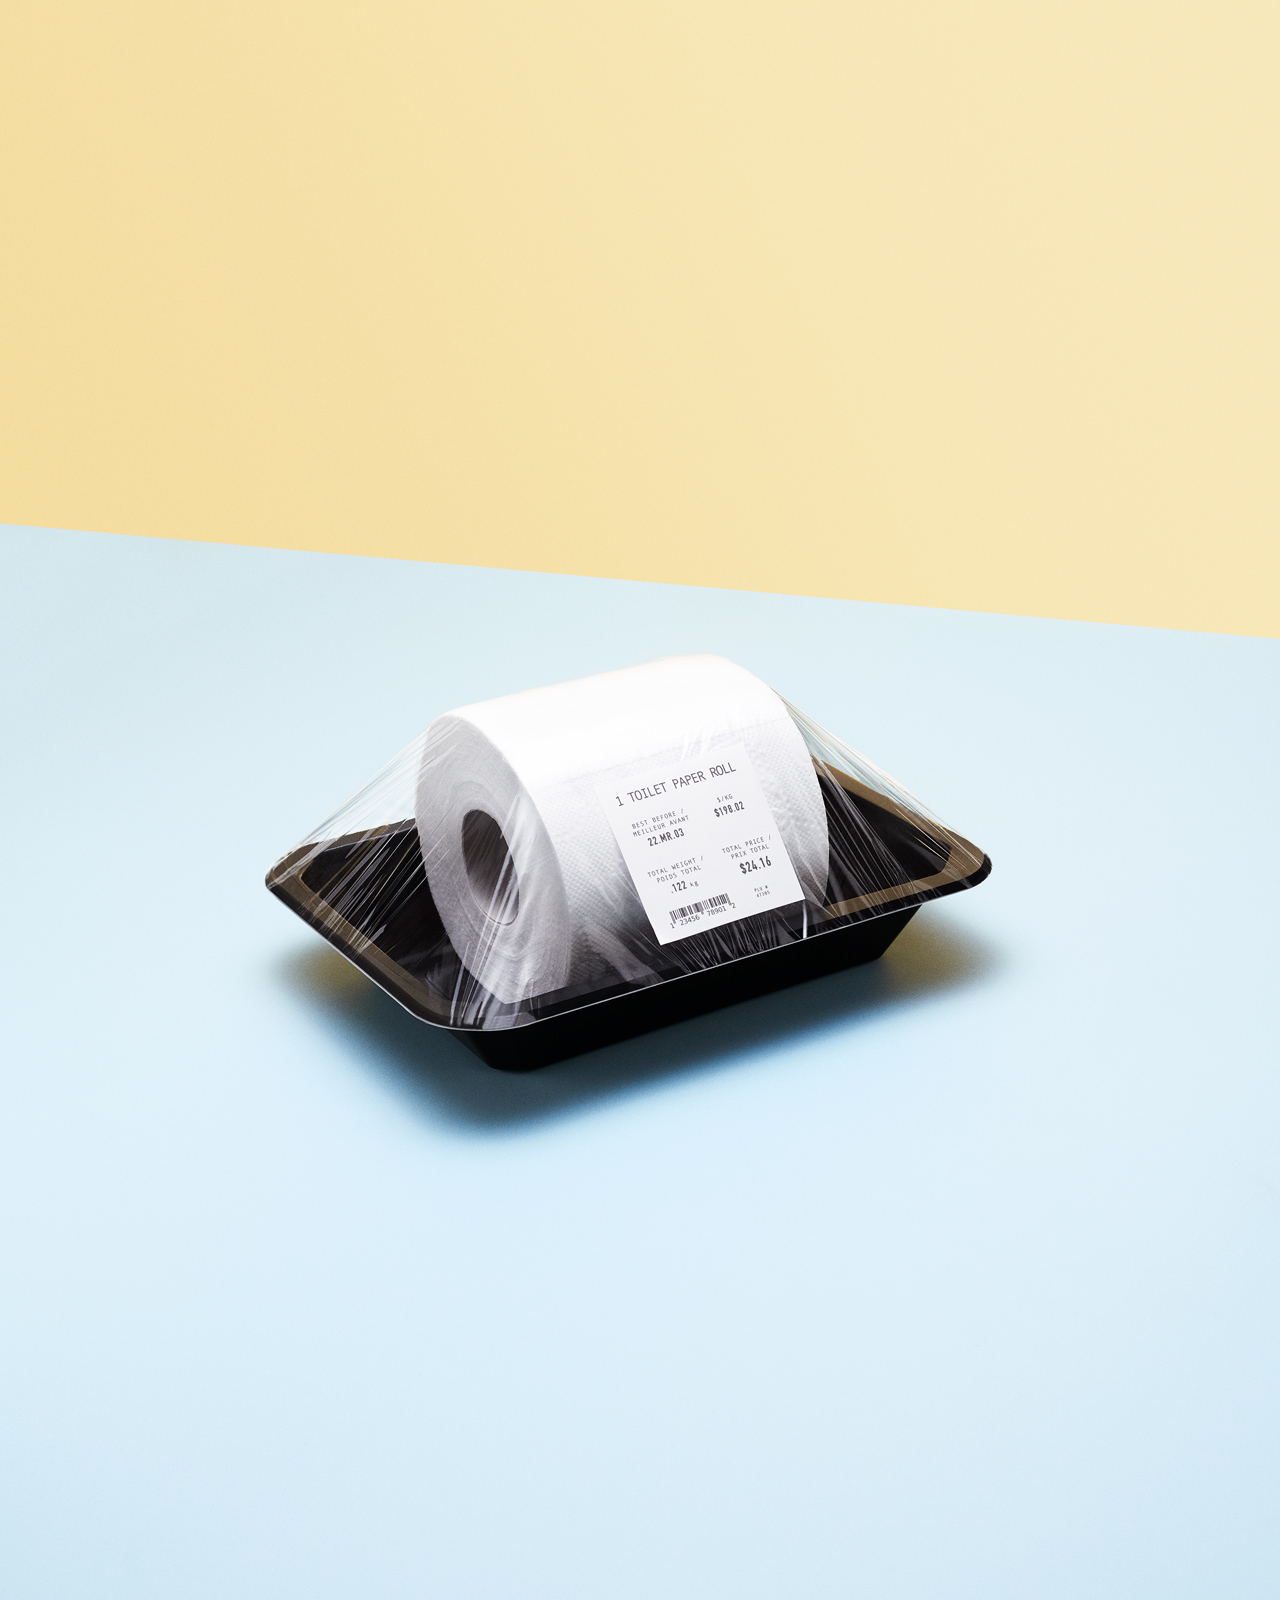 Expensive Toilet Paper - Still Life Photography